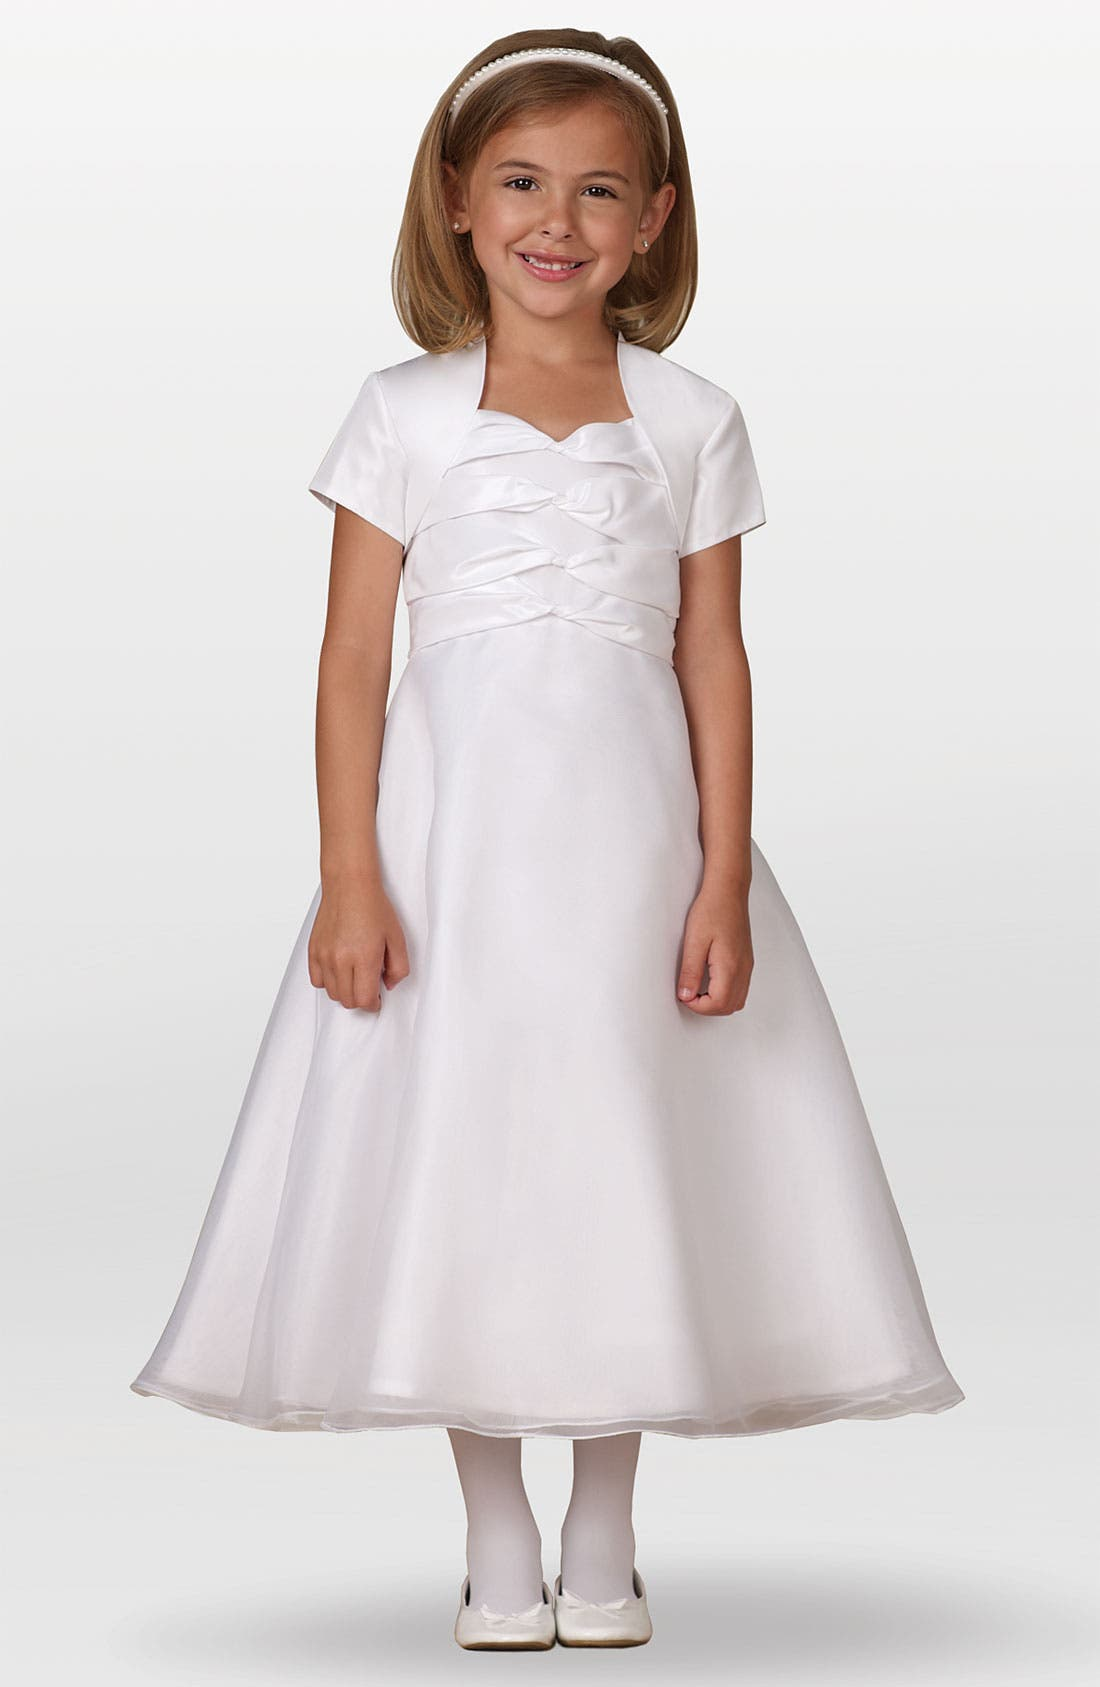 Main Image - Joan Calabrese for Mon Cheri Taffeta Dress & Bolero (Little Girls & Big Girls)